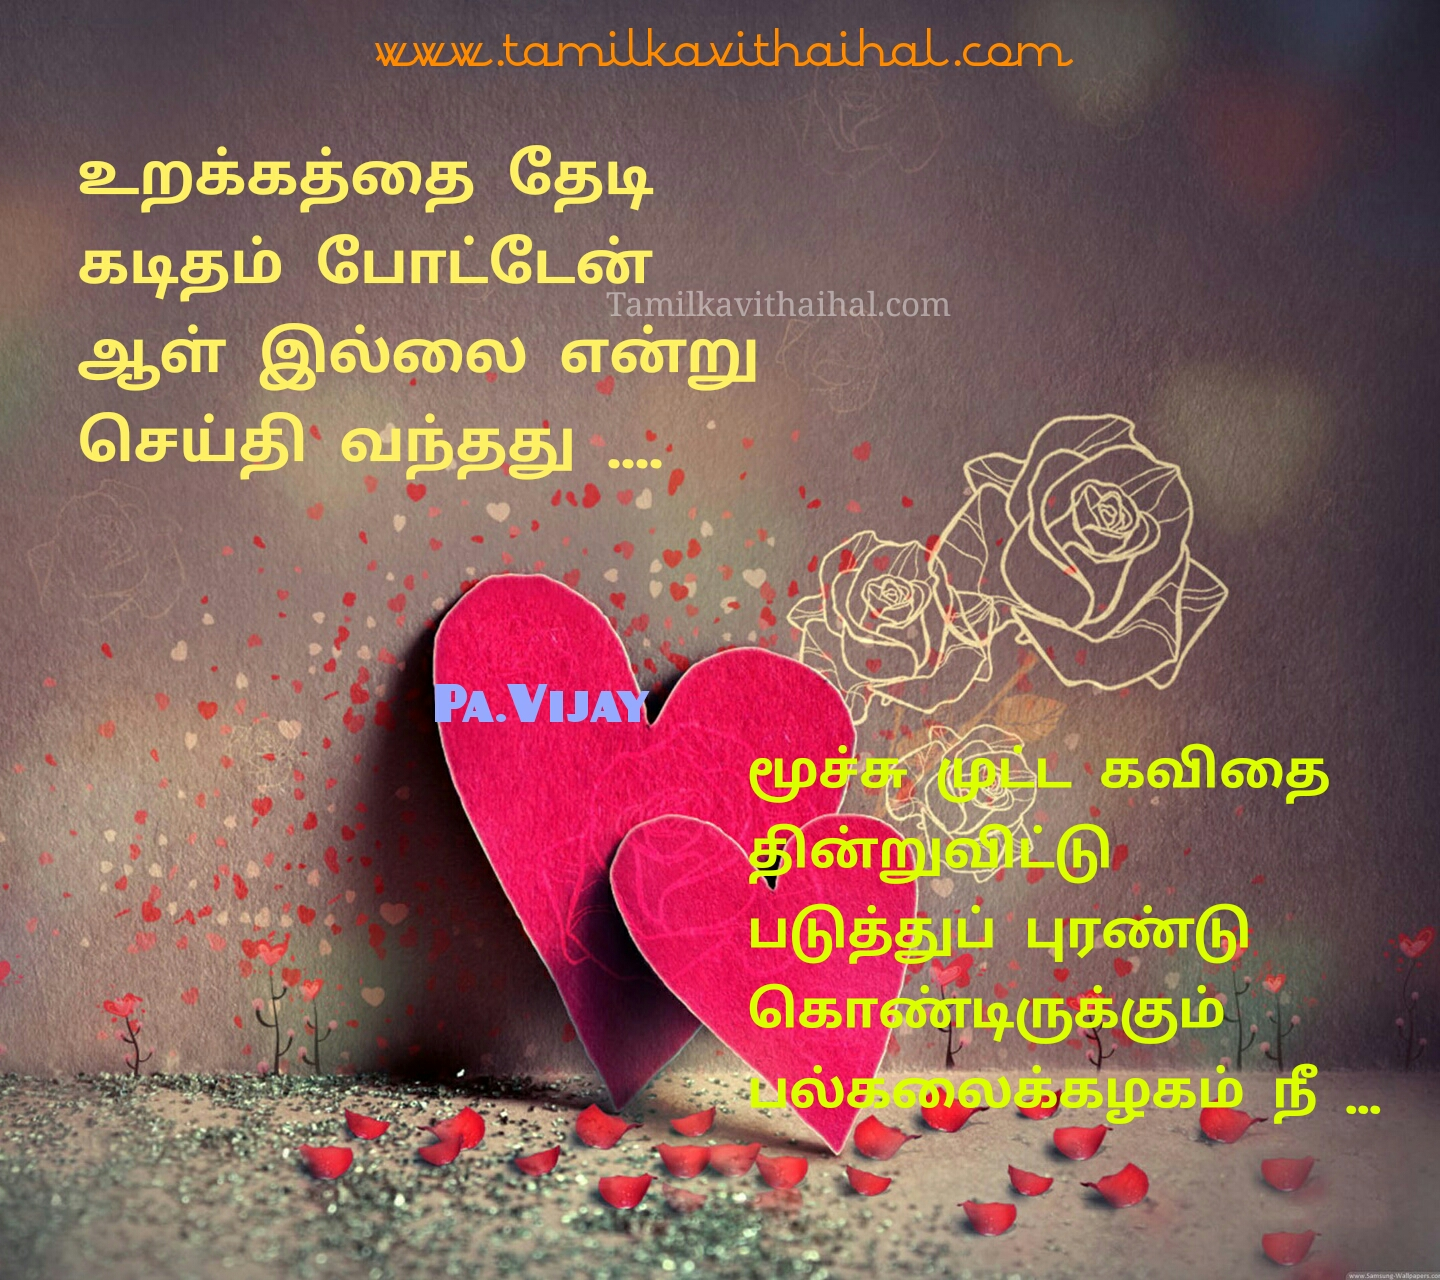 love heart feel kavithai in pa vijay sleep kaditham penmai image